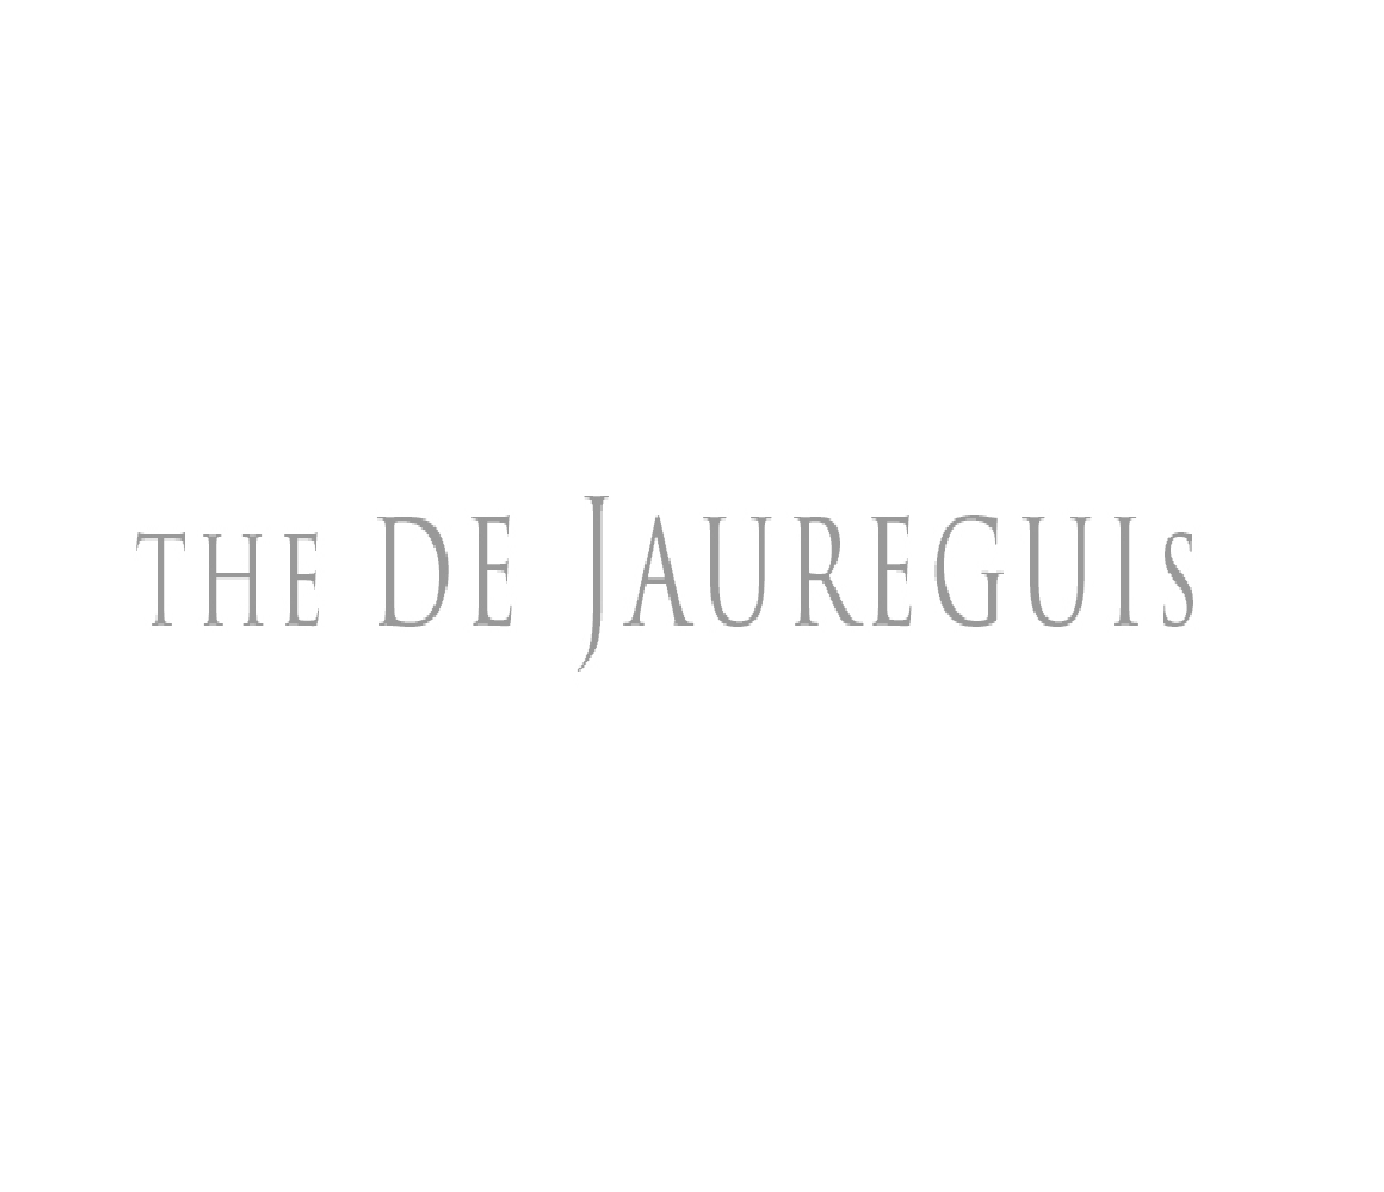 The de Jaureguis - The de Jaureguis